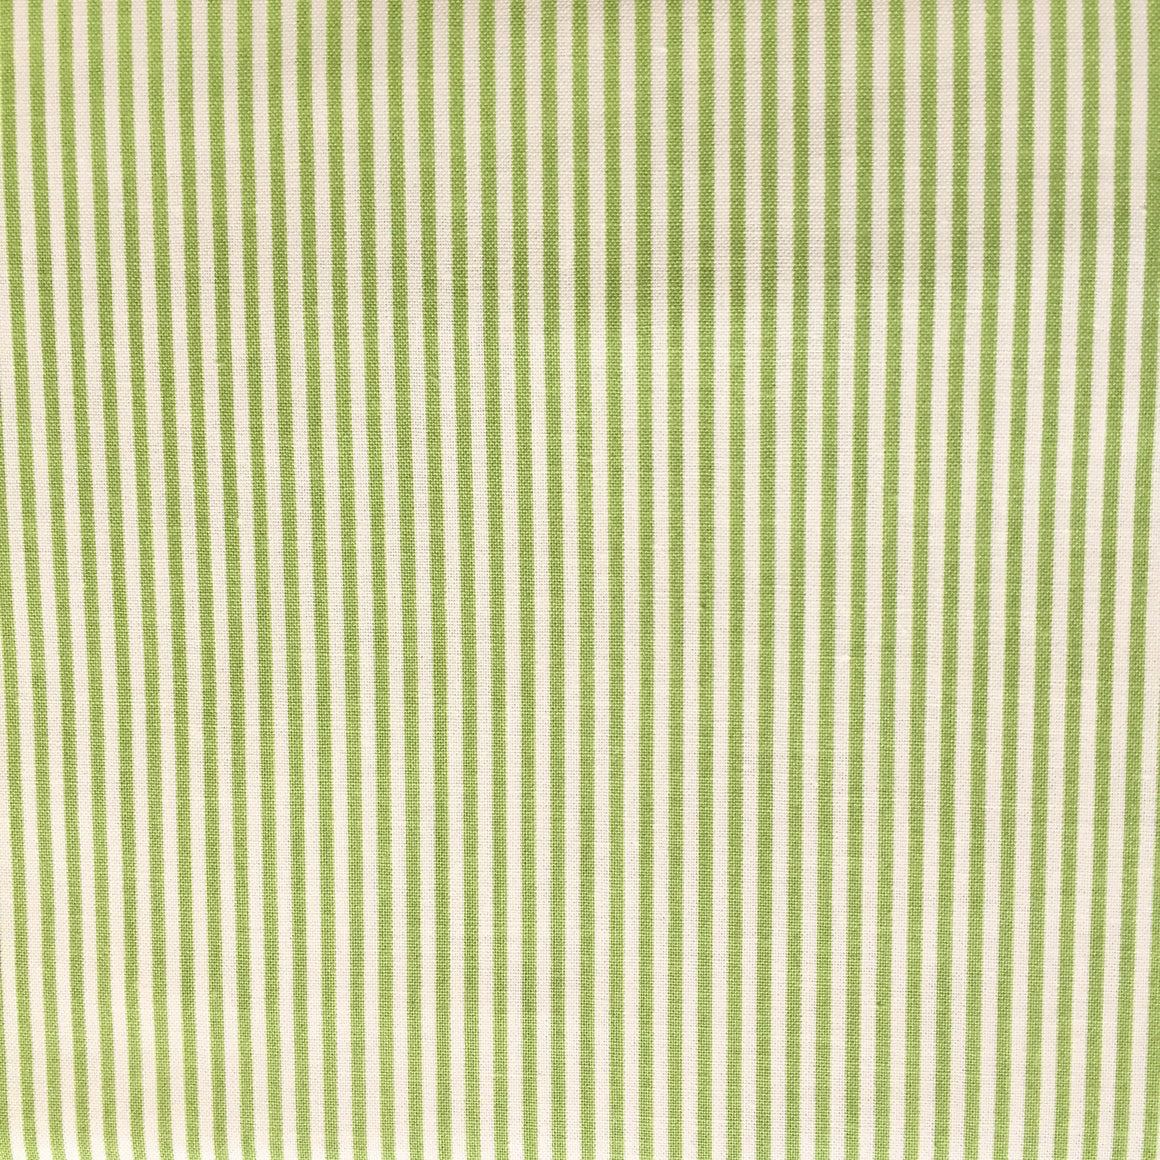 Green & Cream Mini Stripe